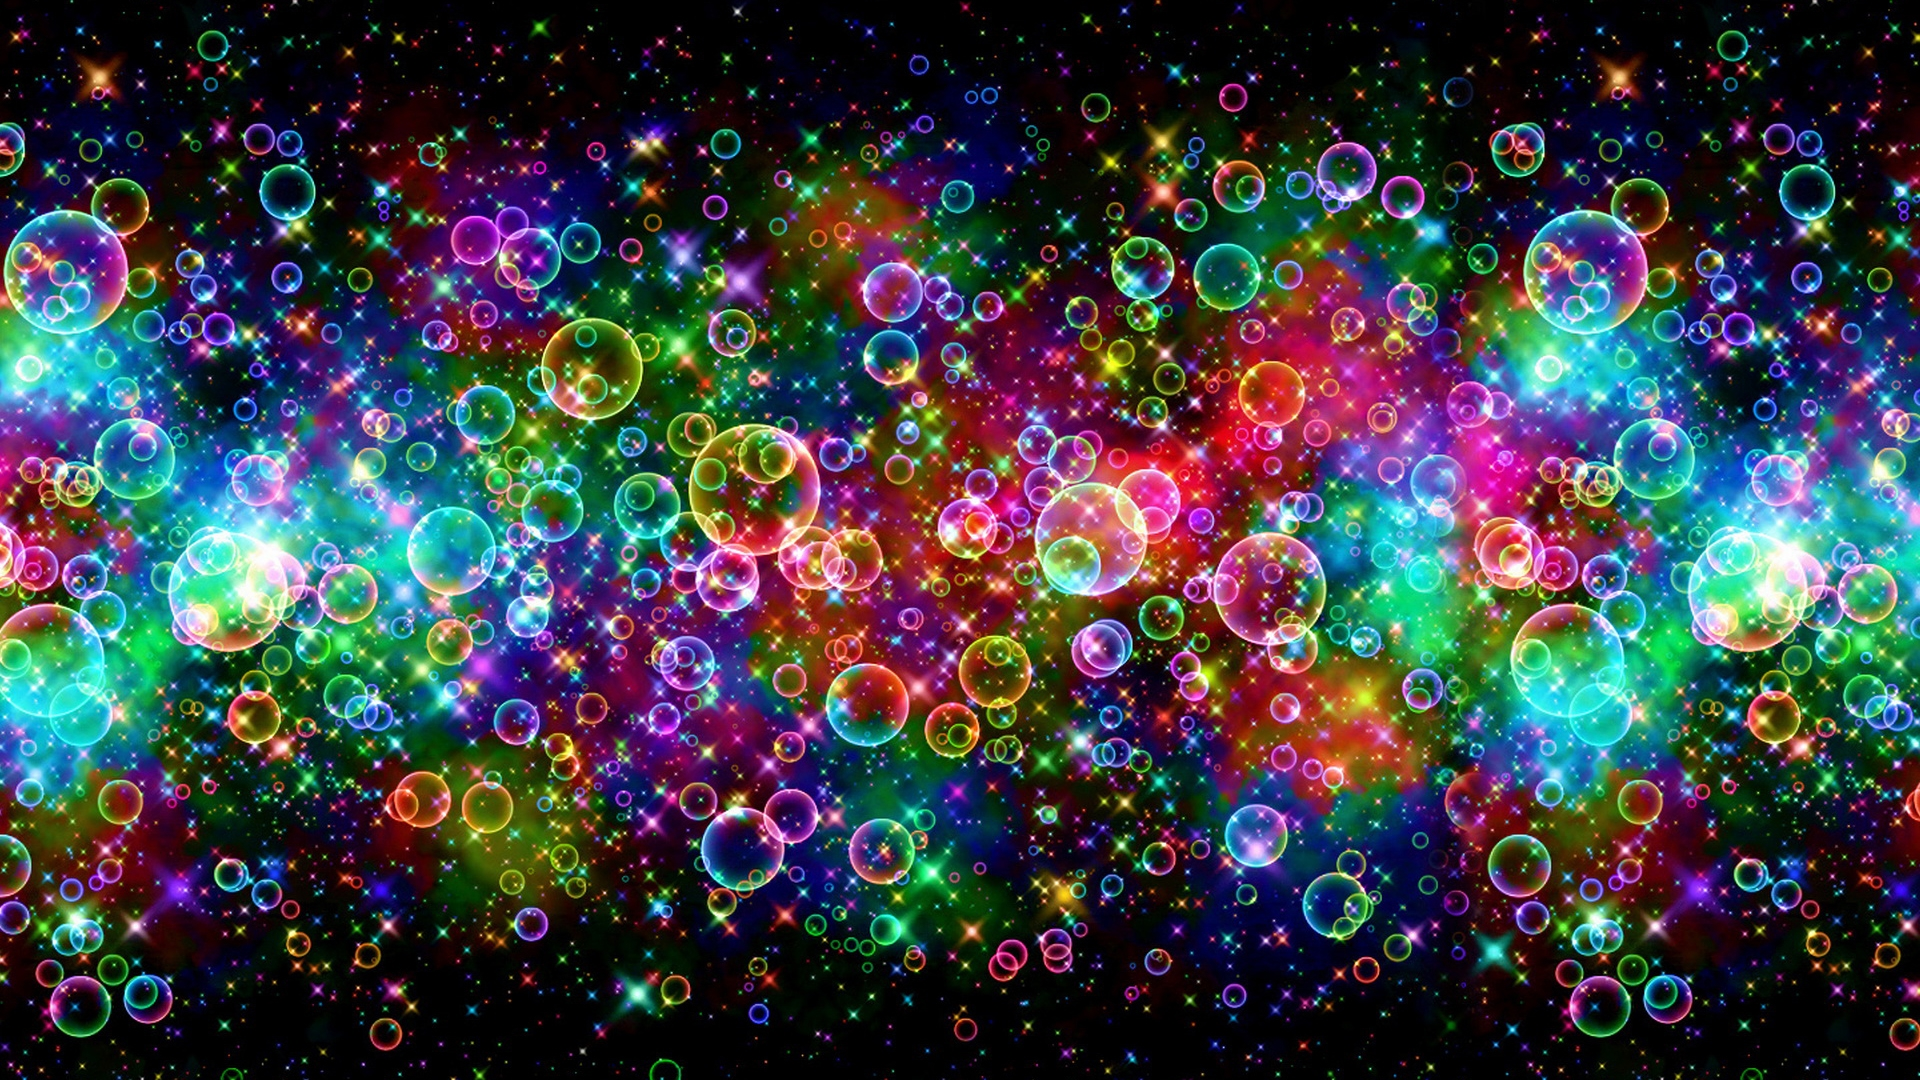 Colorful Bubbles 3D Wallpaper   HQ Wallpapers download 100 high 1920x1080